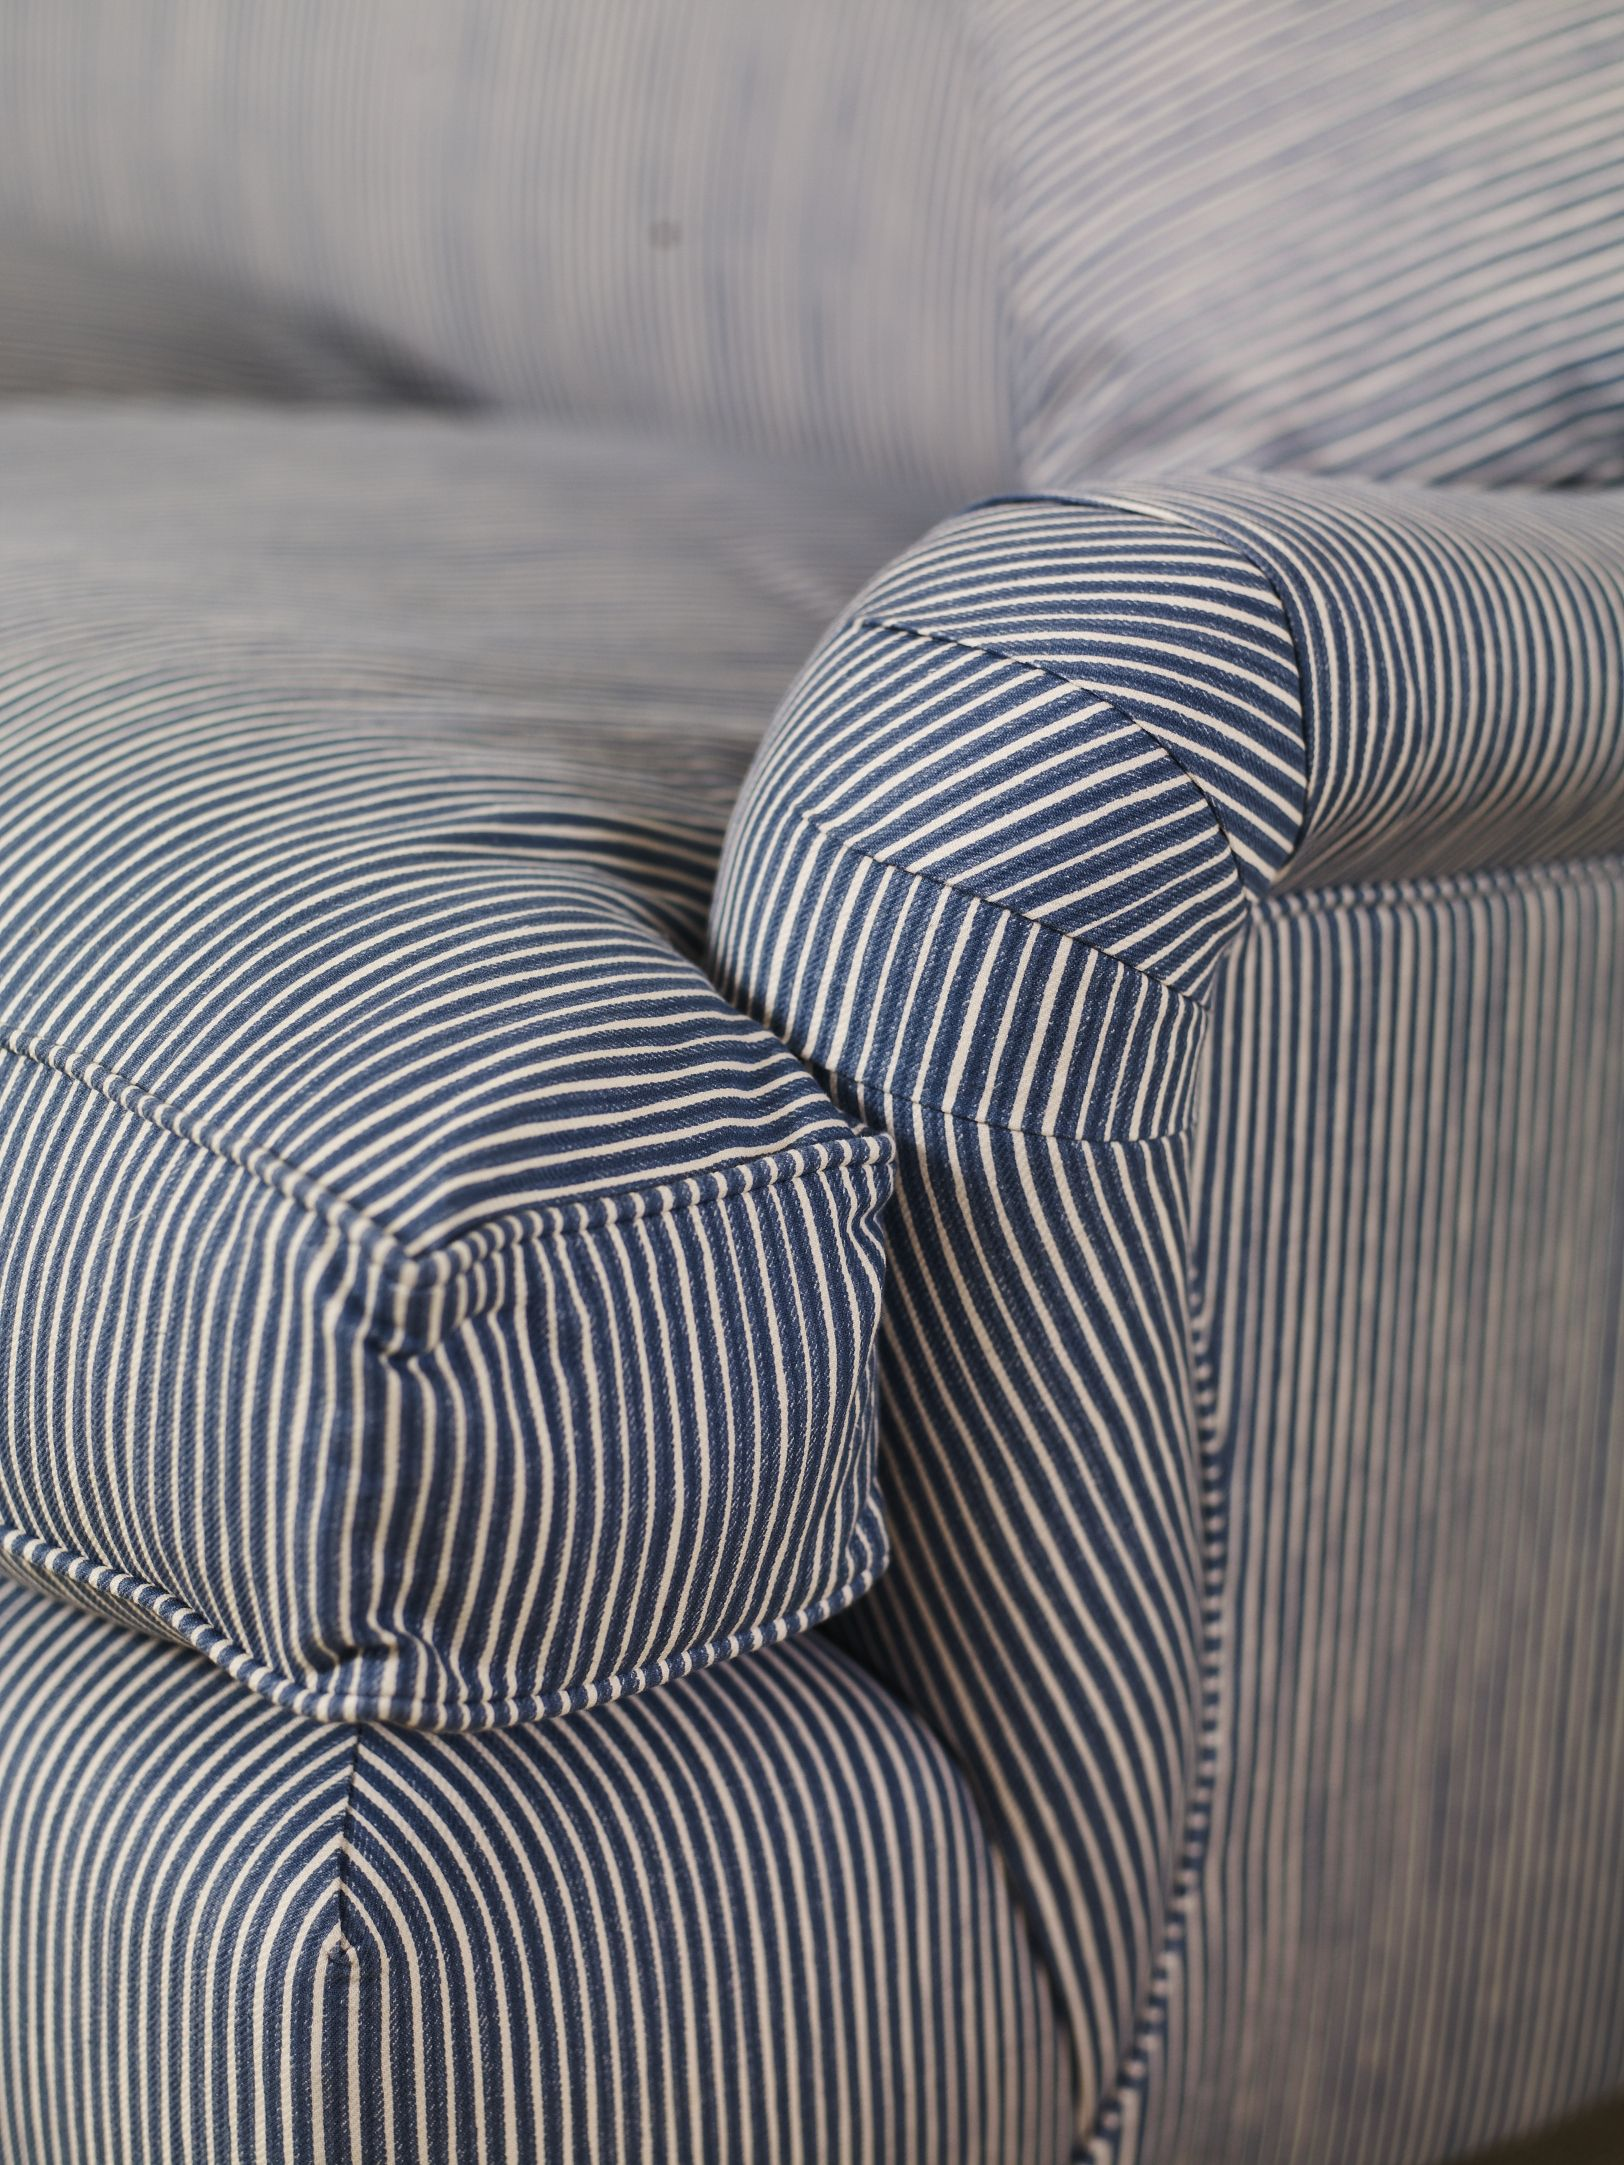 Fabrics For Chairs Striped Folding Chair Tesco Blue Stripe Roll Arm Our New English Cottage In 2019